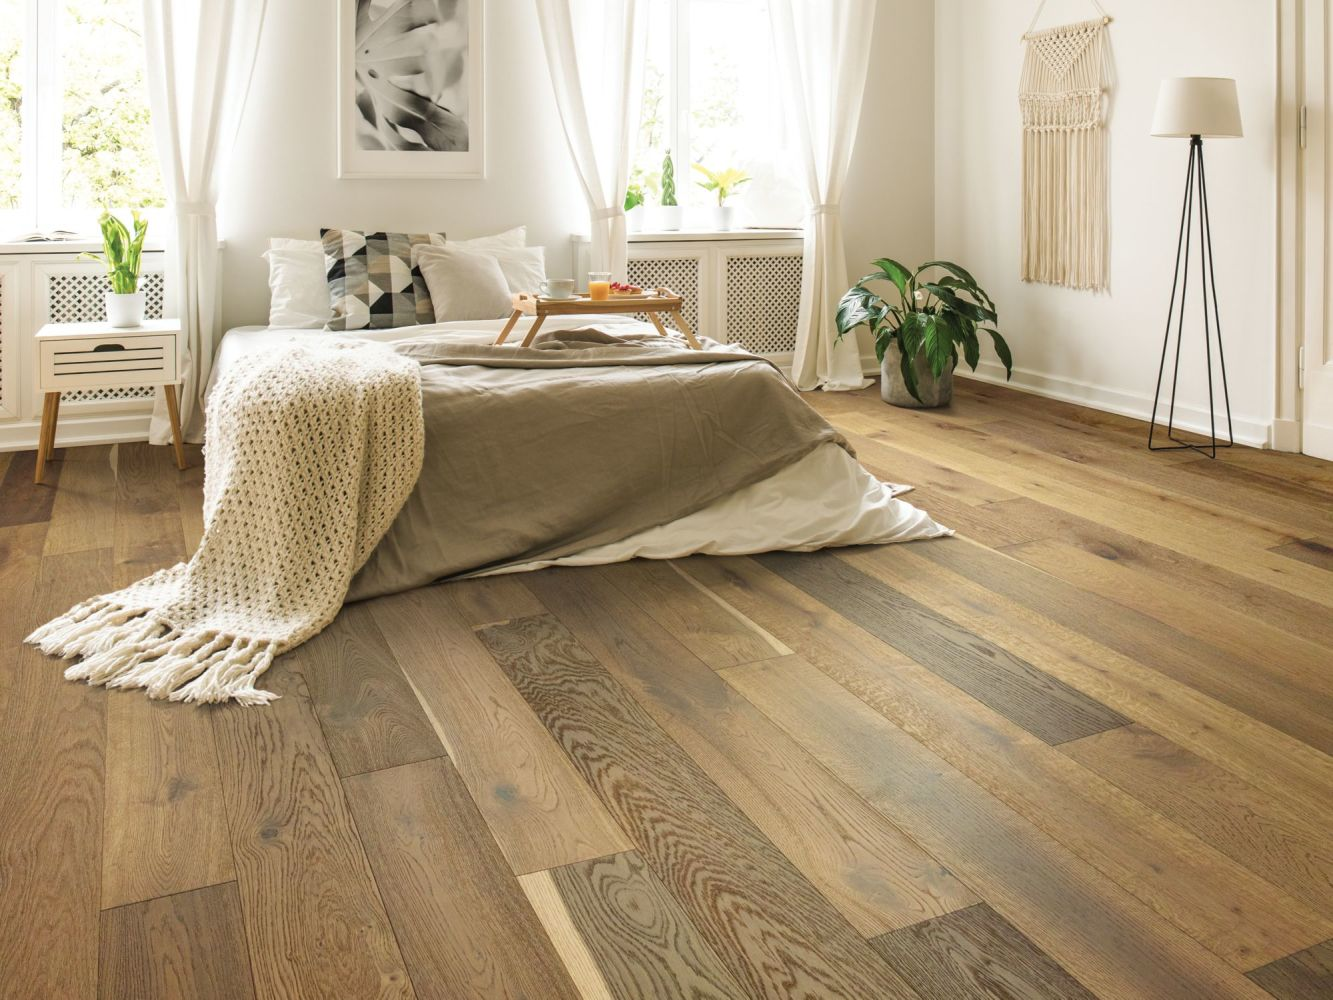 Shaw Floors Home Fn Gold Hardwood Perspectives Prose 07067_HW707